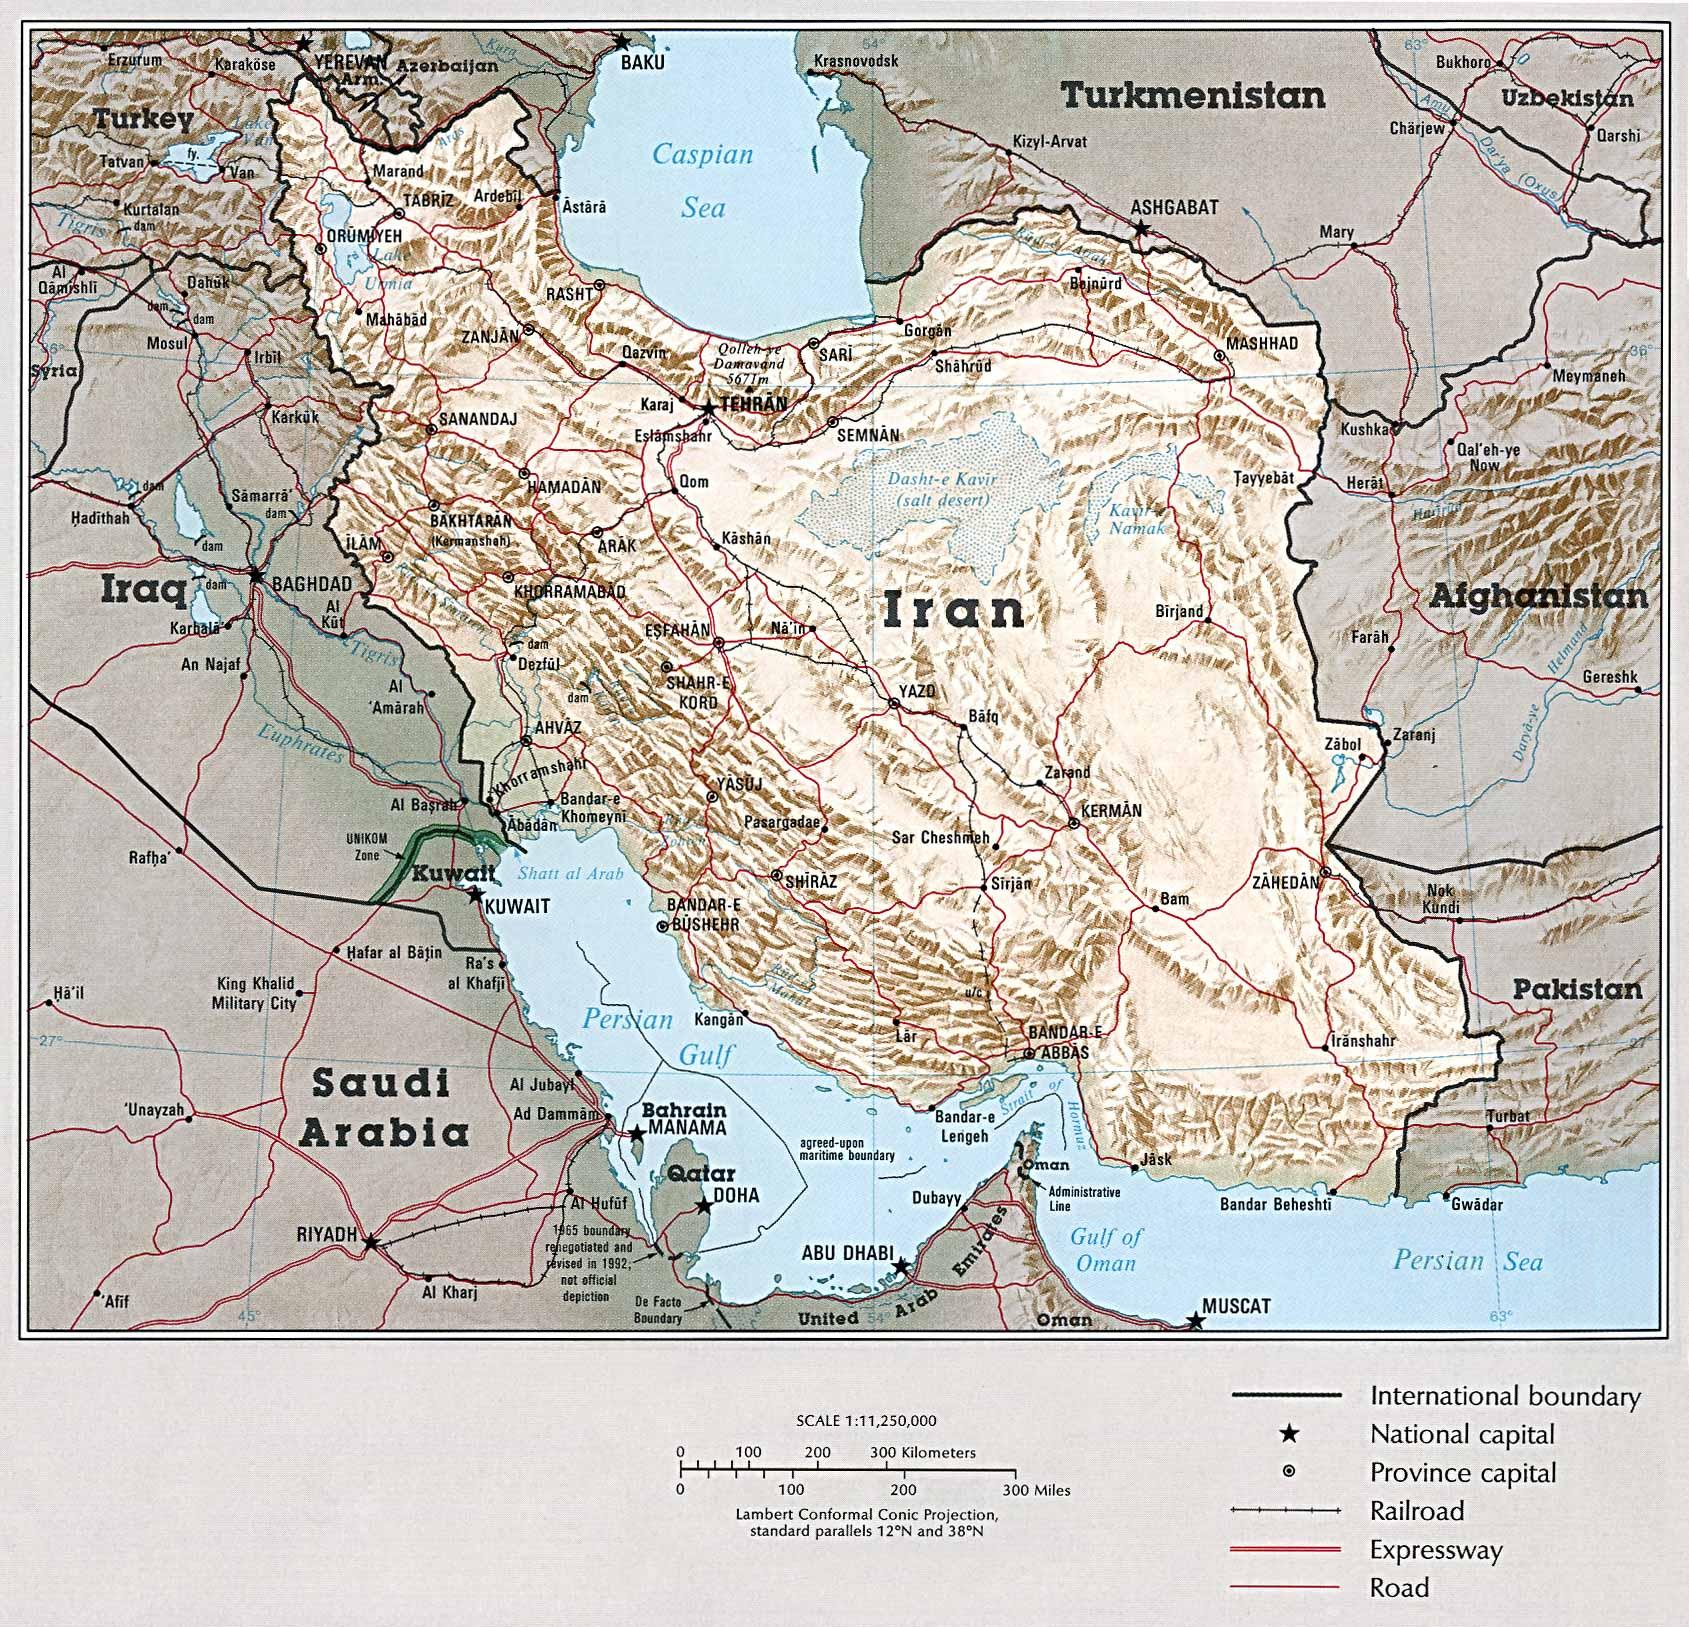 Maps Ancient Iran Through Ages 726BCE to CE640